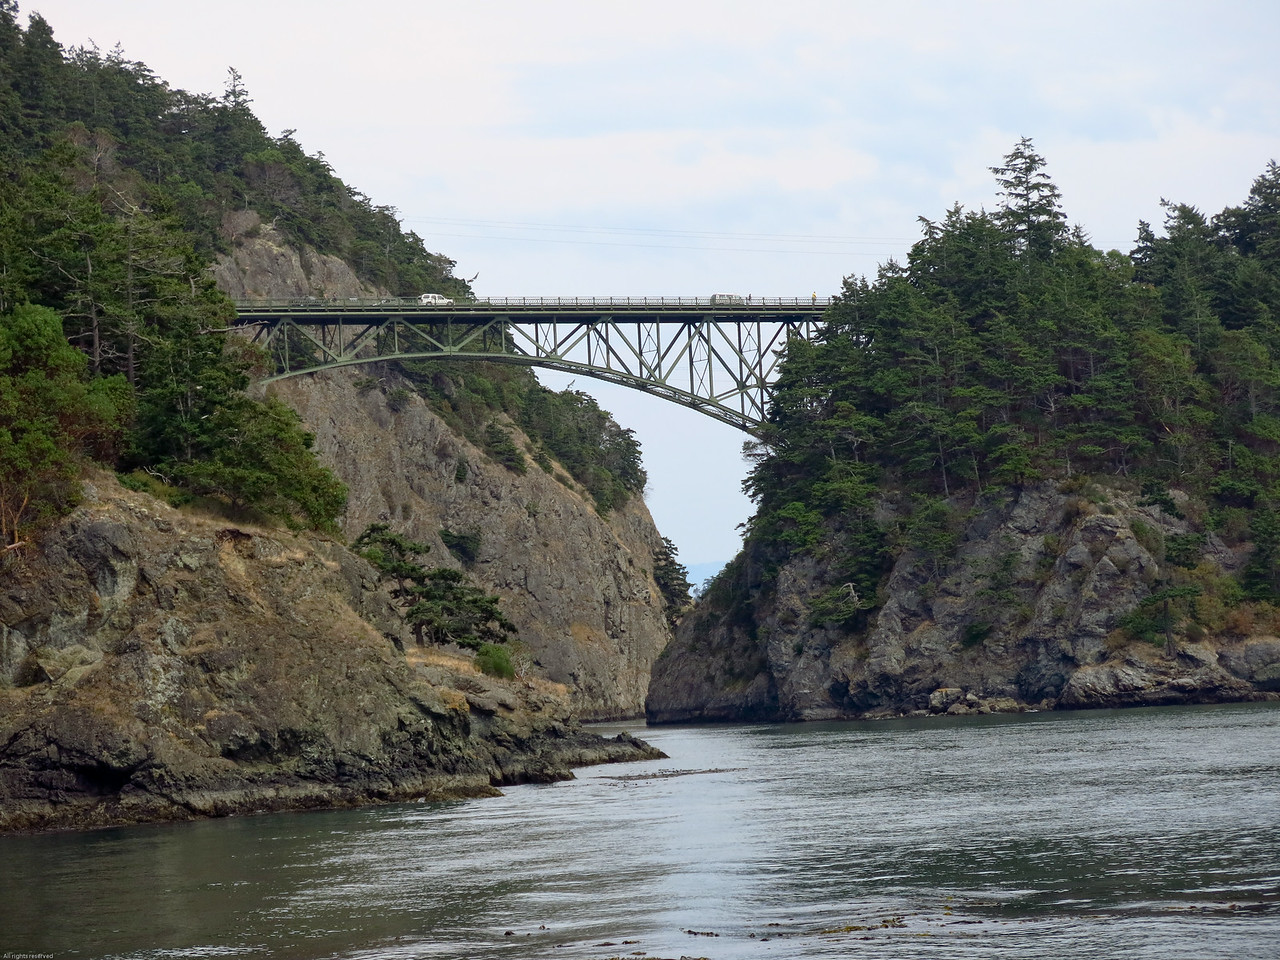 Bridge from Fidalgo Island to Pass Island